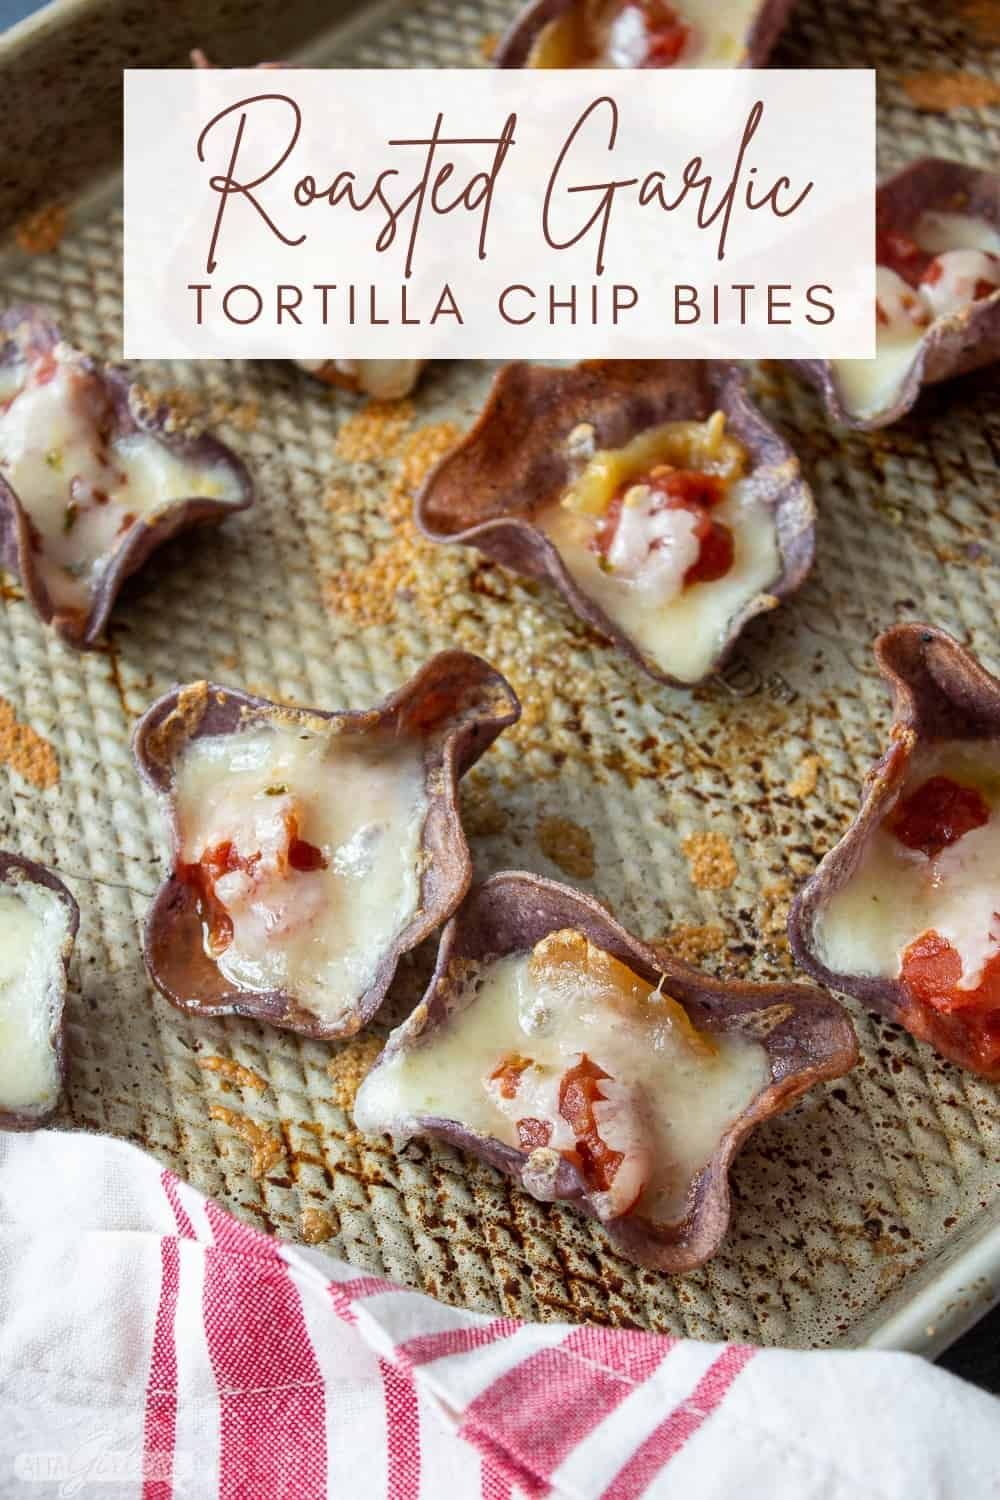 blue corn tortilla chips filled with cheese, roasted garlic and salsa on a sheet pan